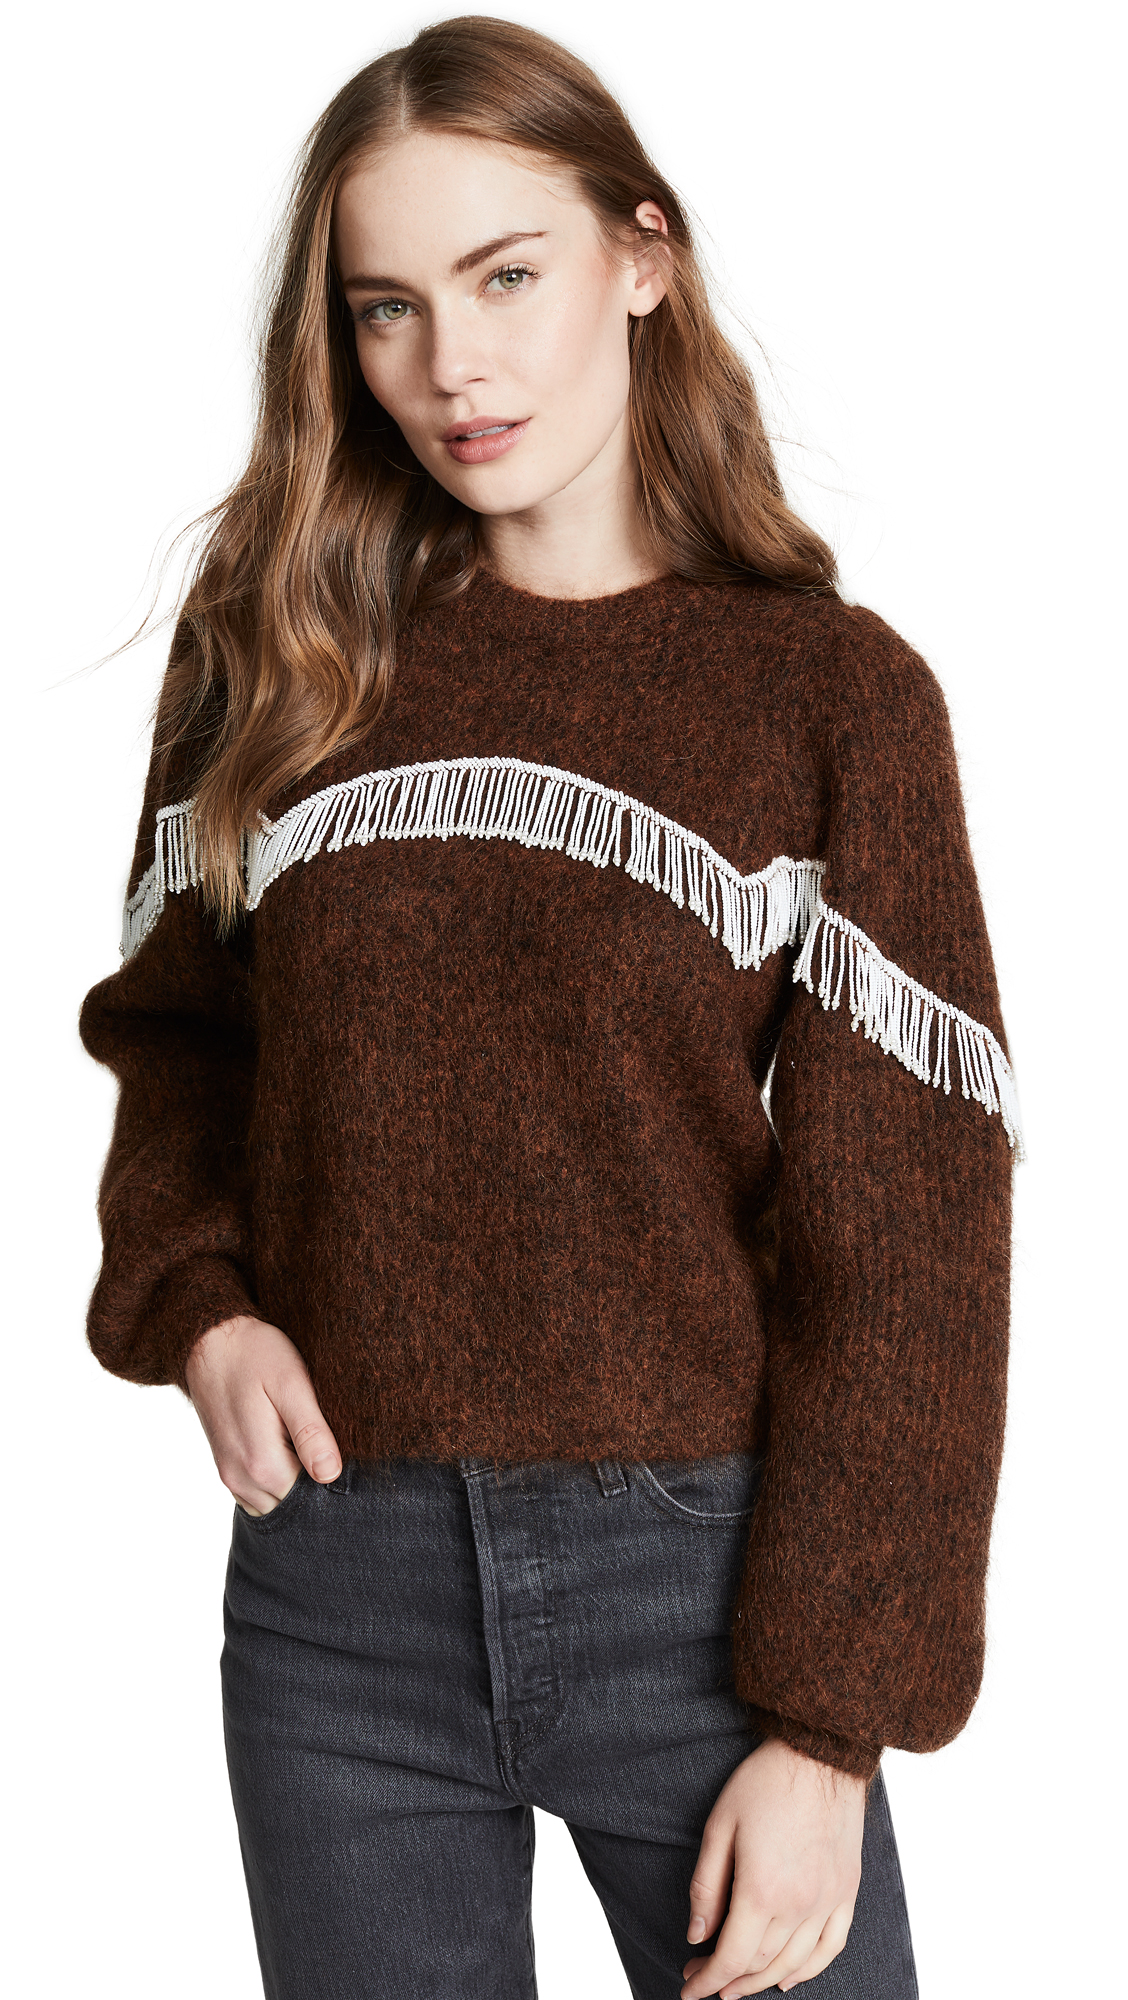 Heavy Soft Wool Knit Puff Sleeve Pullover in Caramel Café